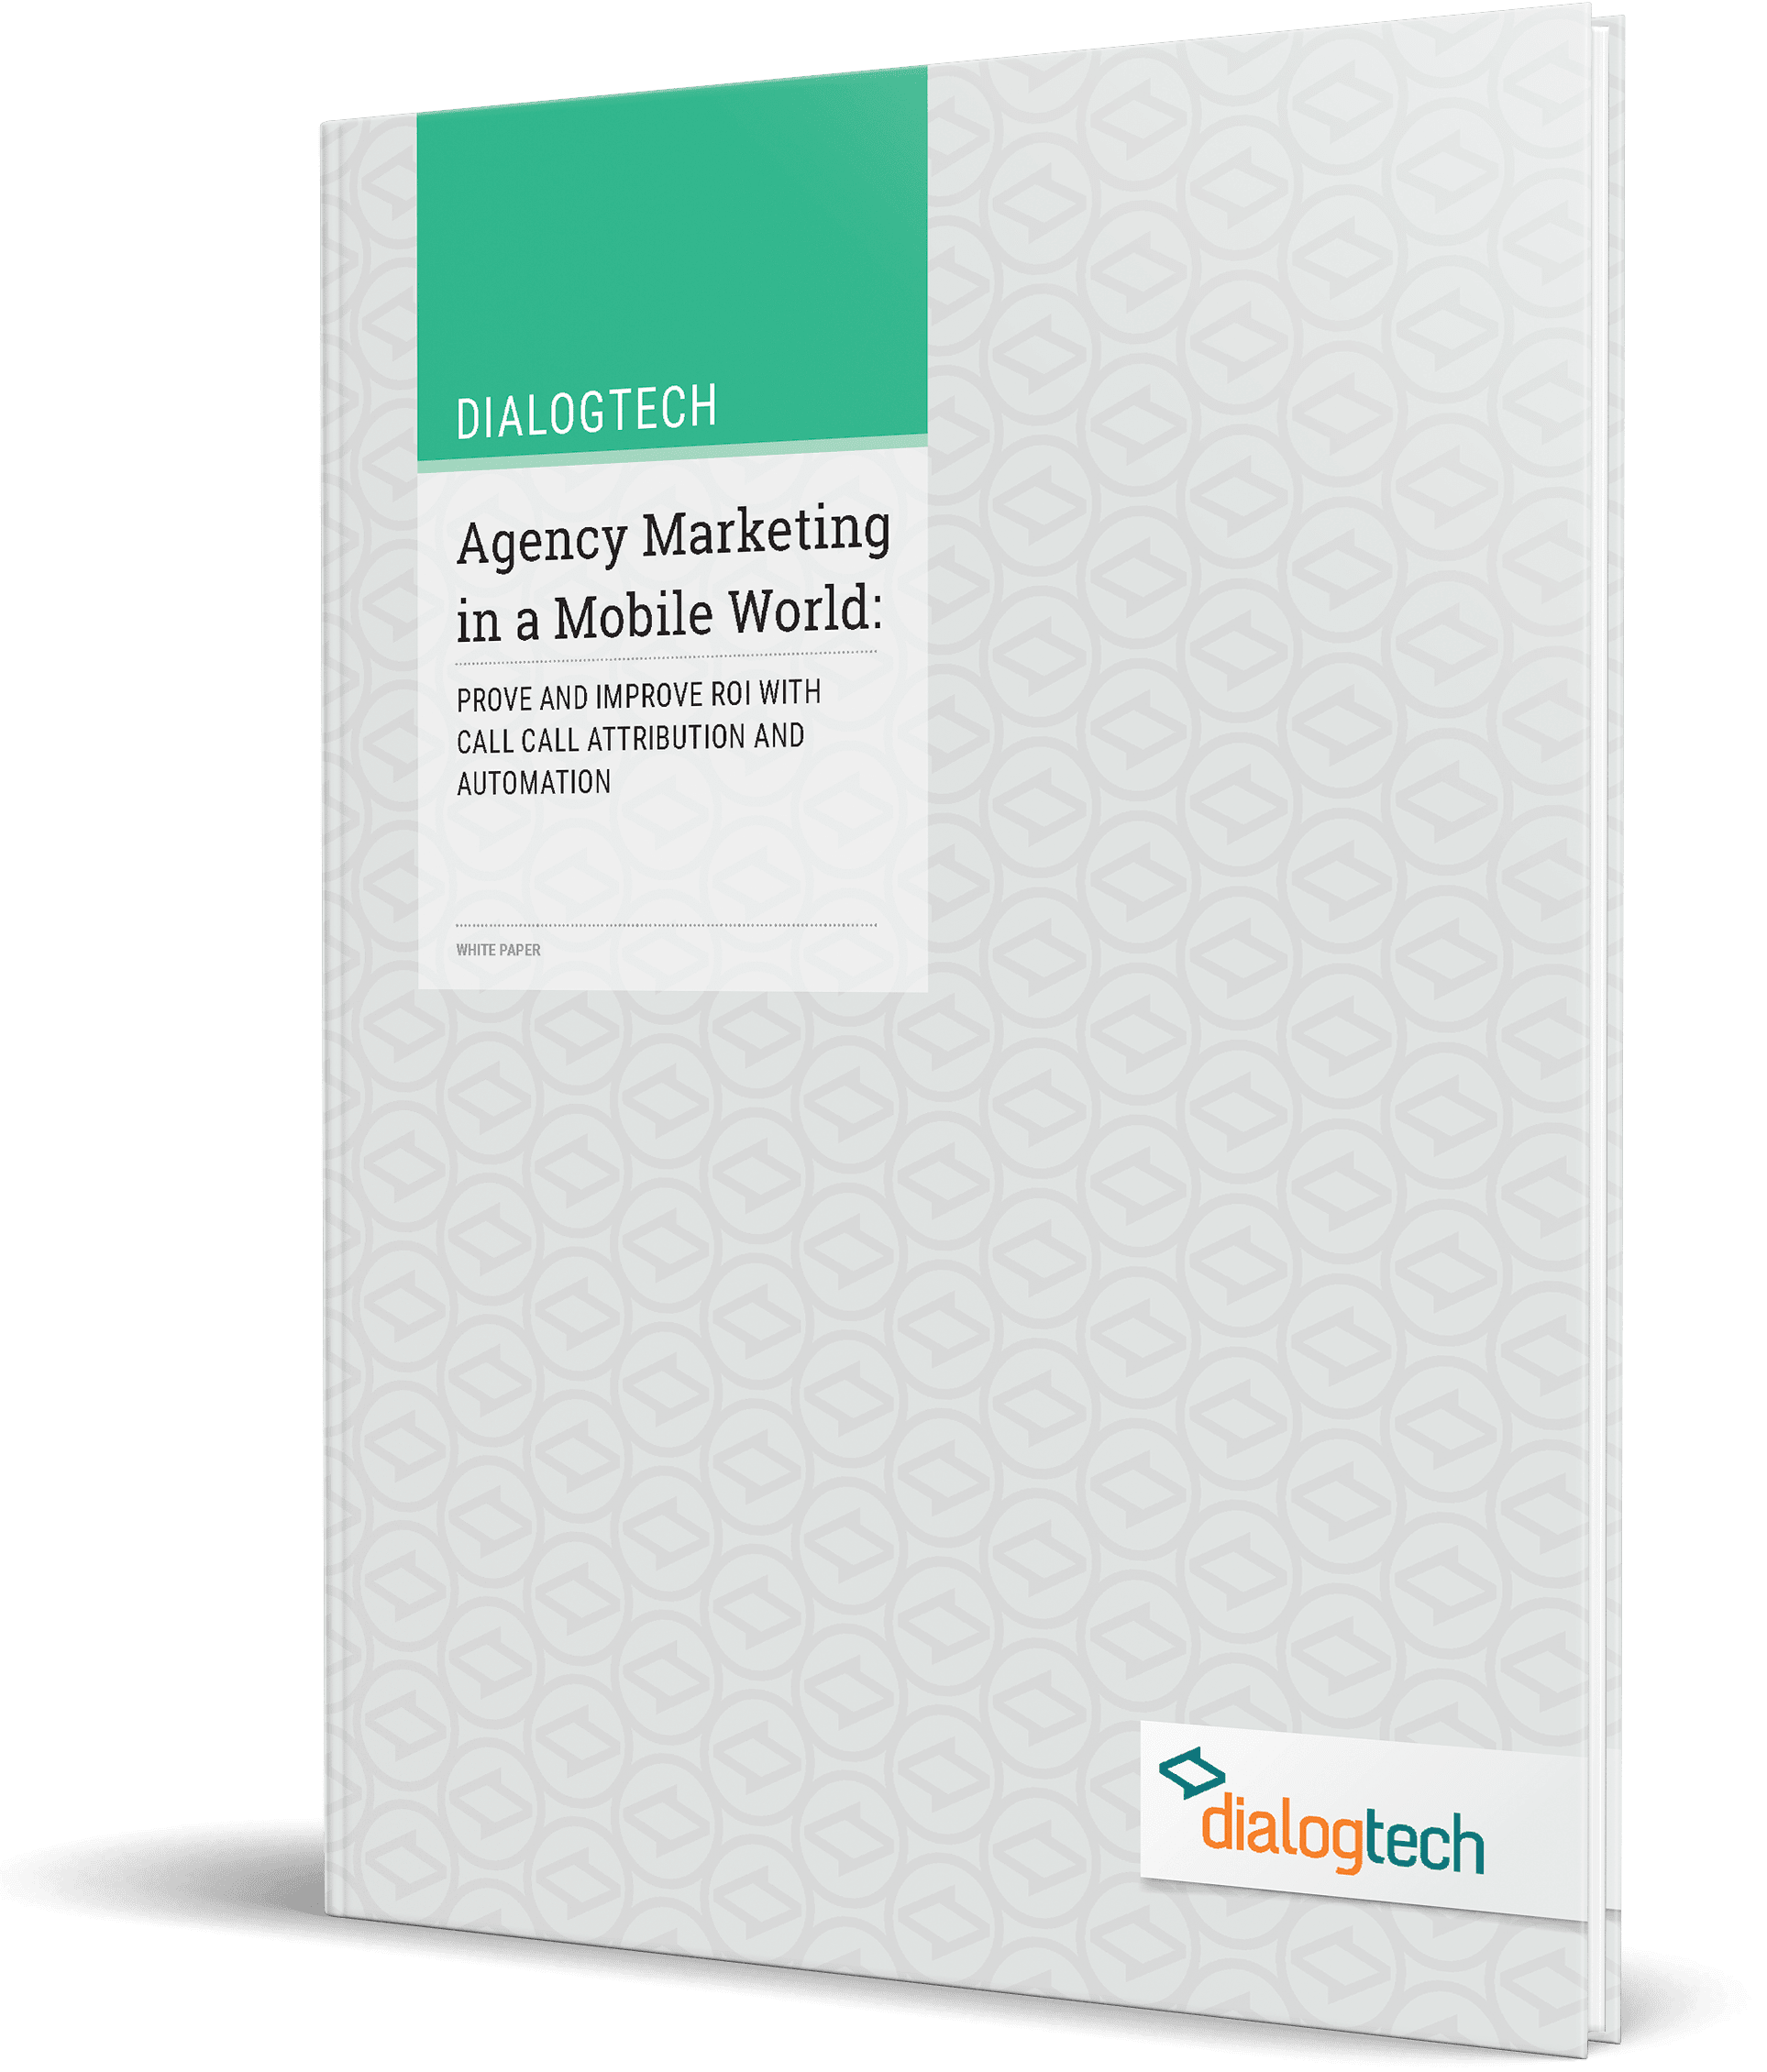 Agency Marketing In A Mobile World: Prove And Improve ROI With Call Attribution